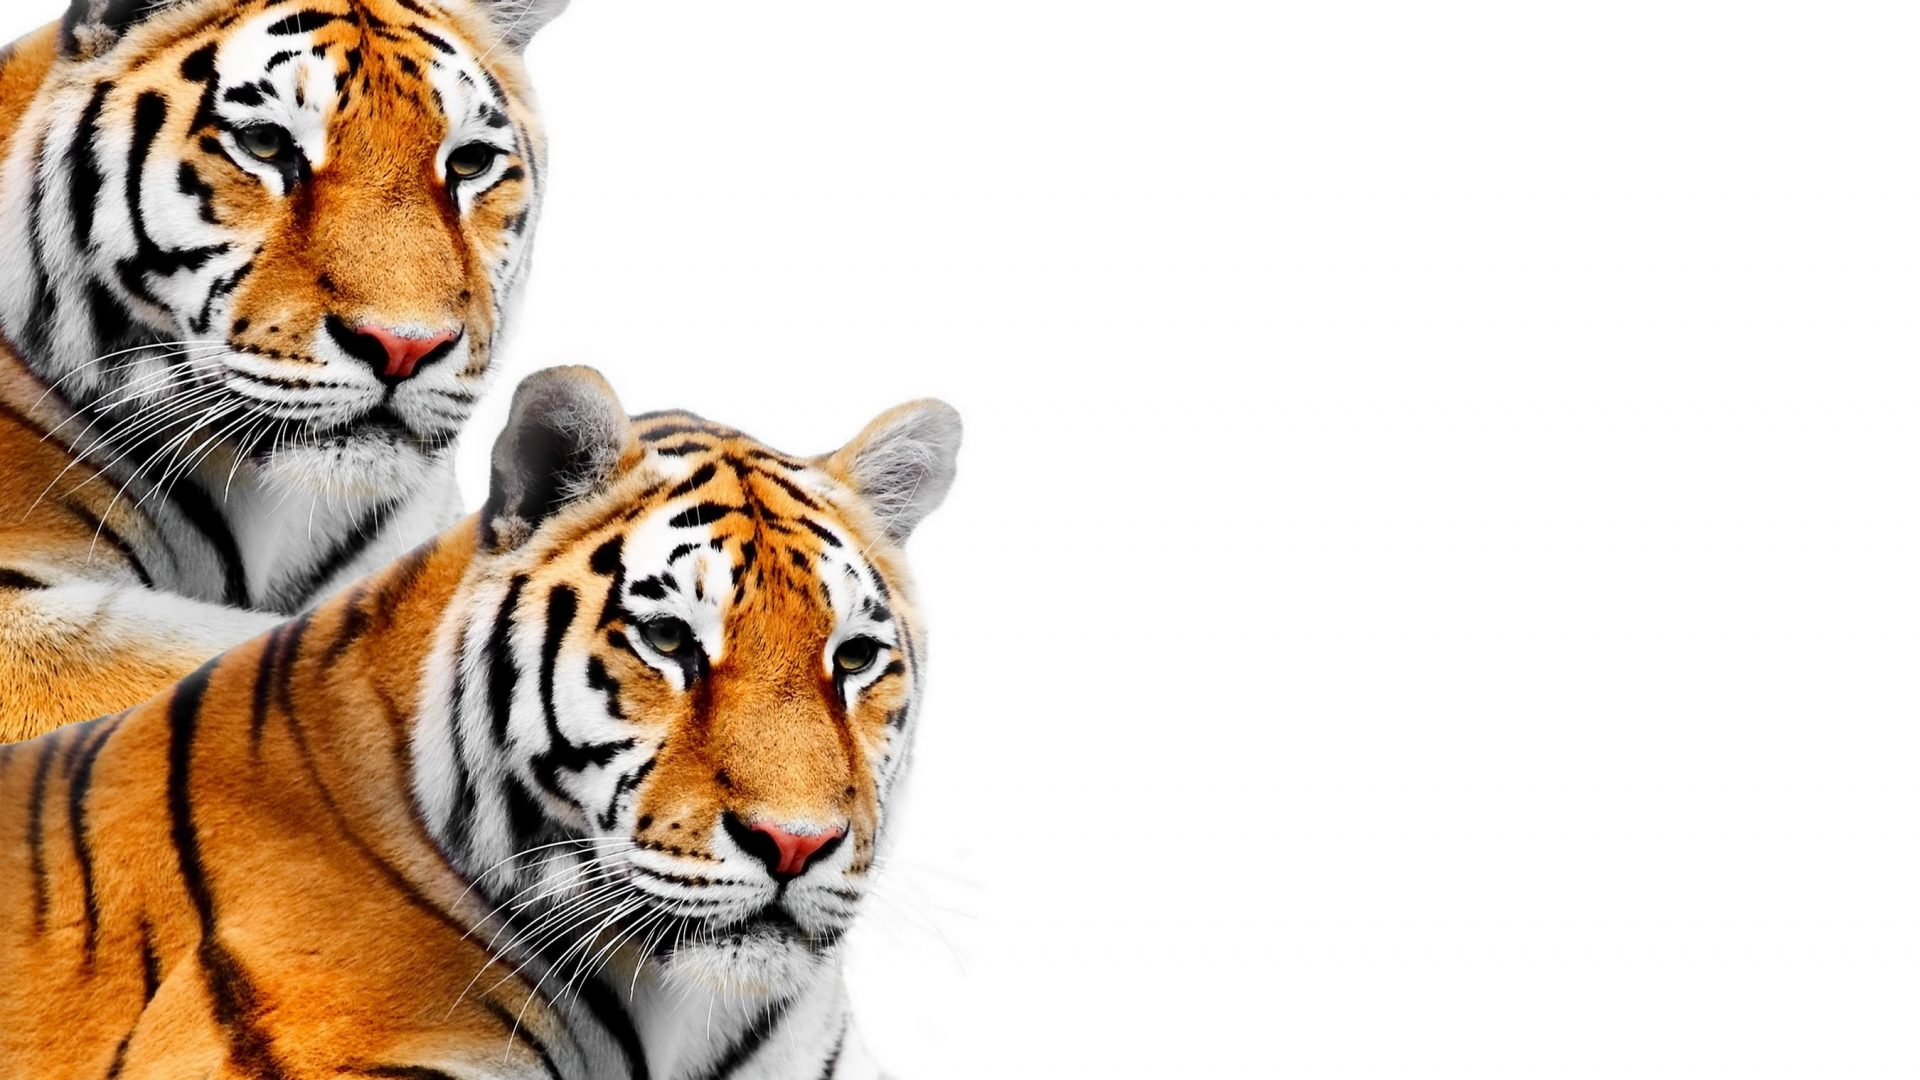 1920x1080 Cats Wallpapers Page 4 Two Tigers Big Cats Tiger Animals Cat